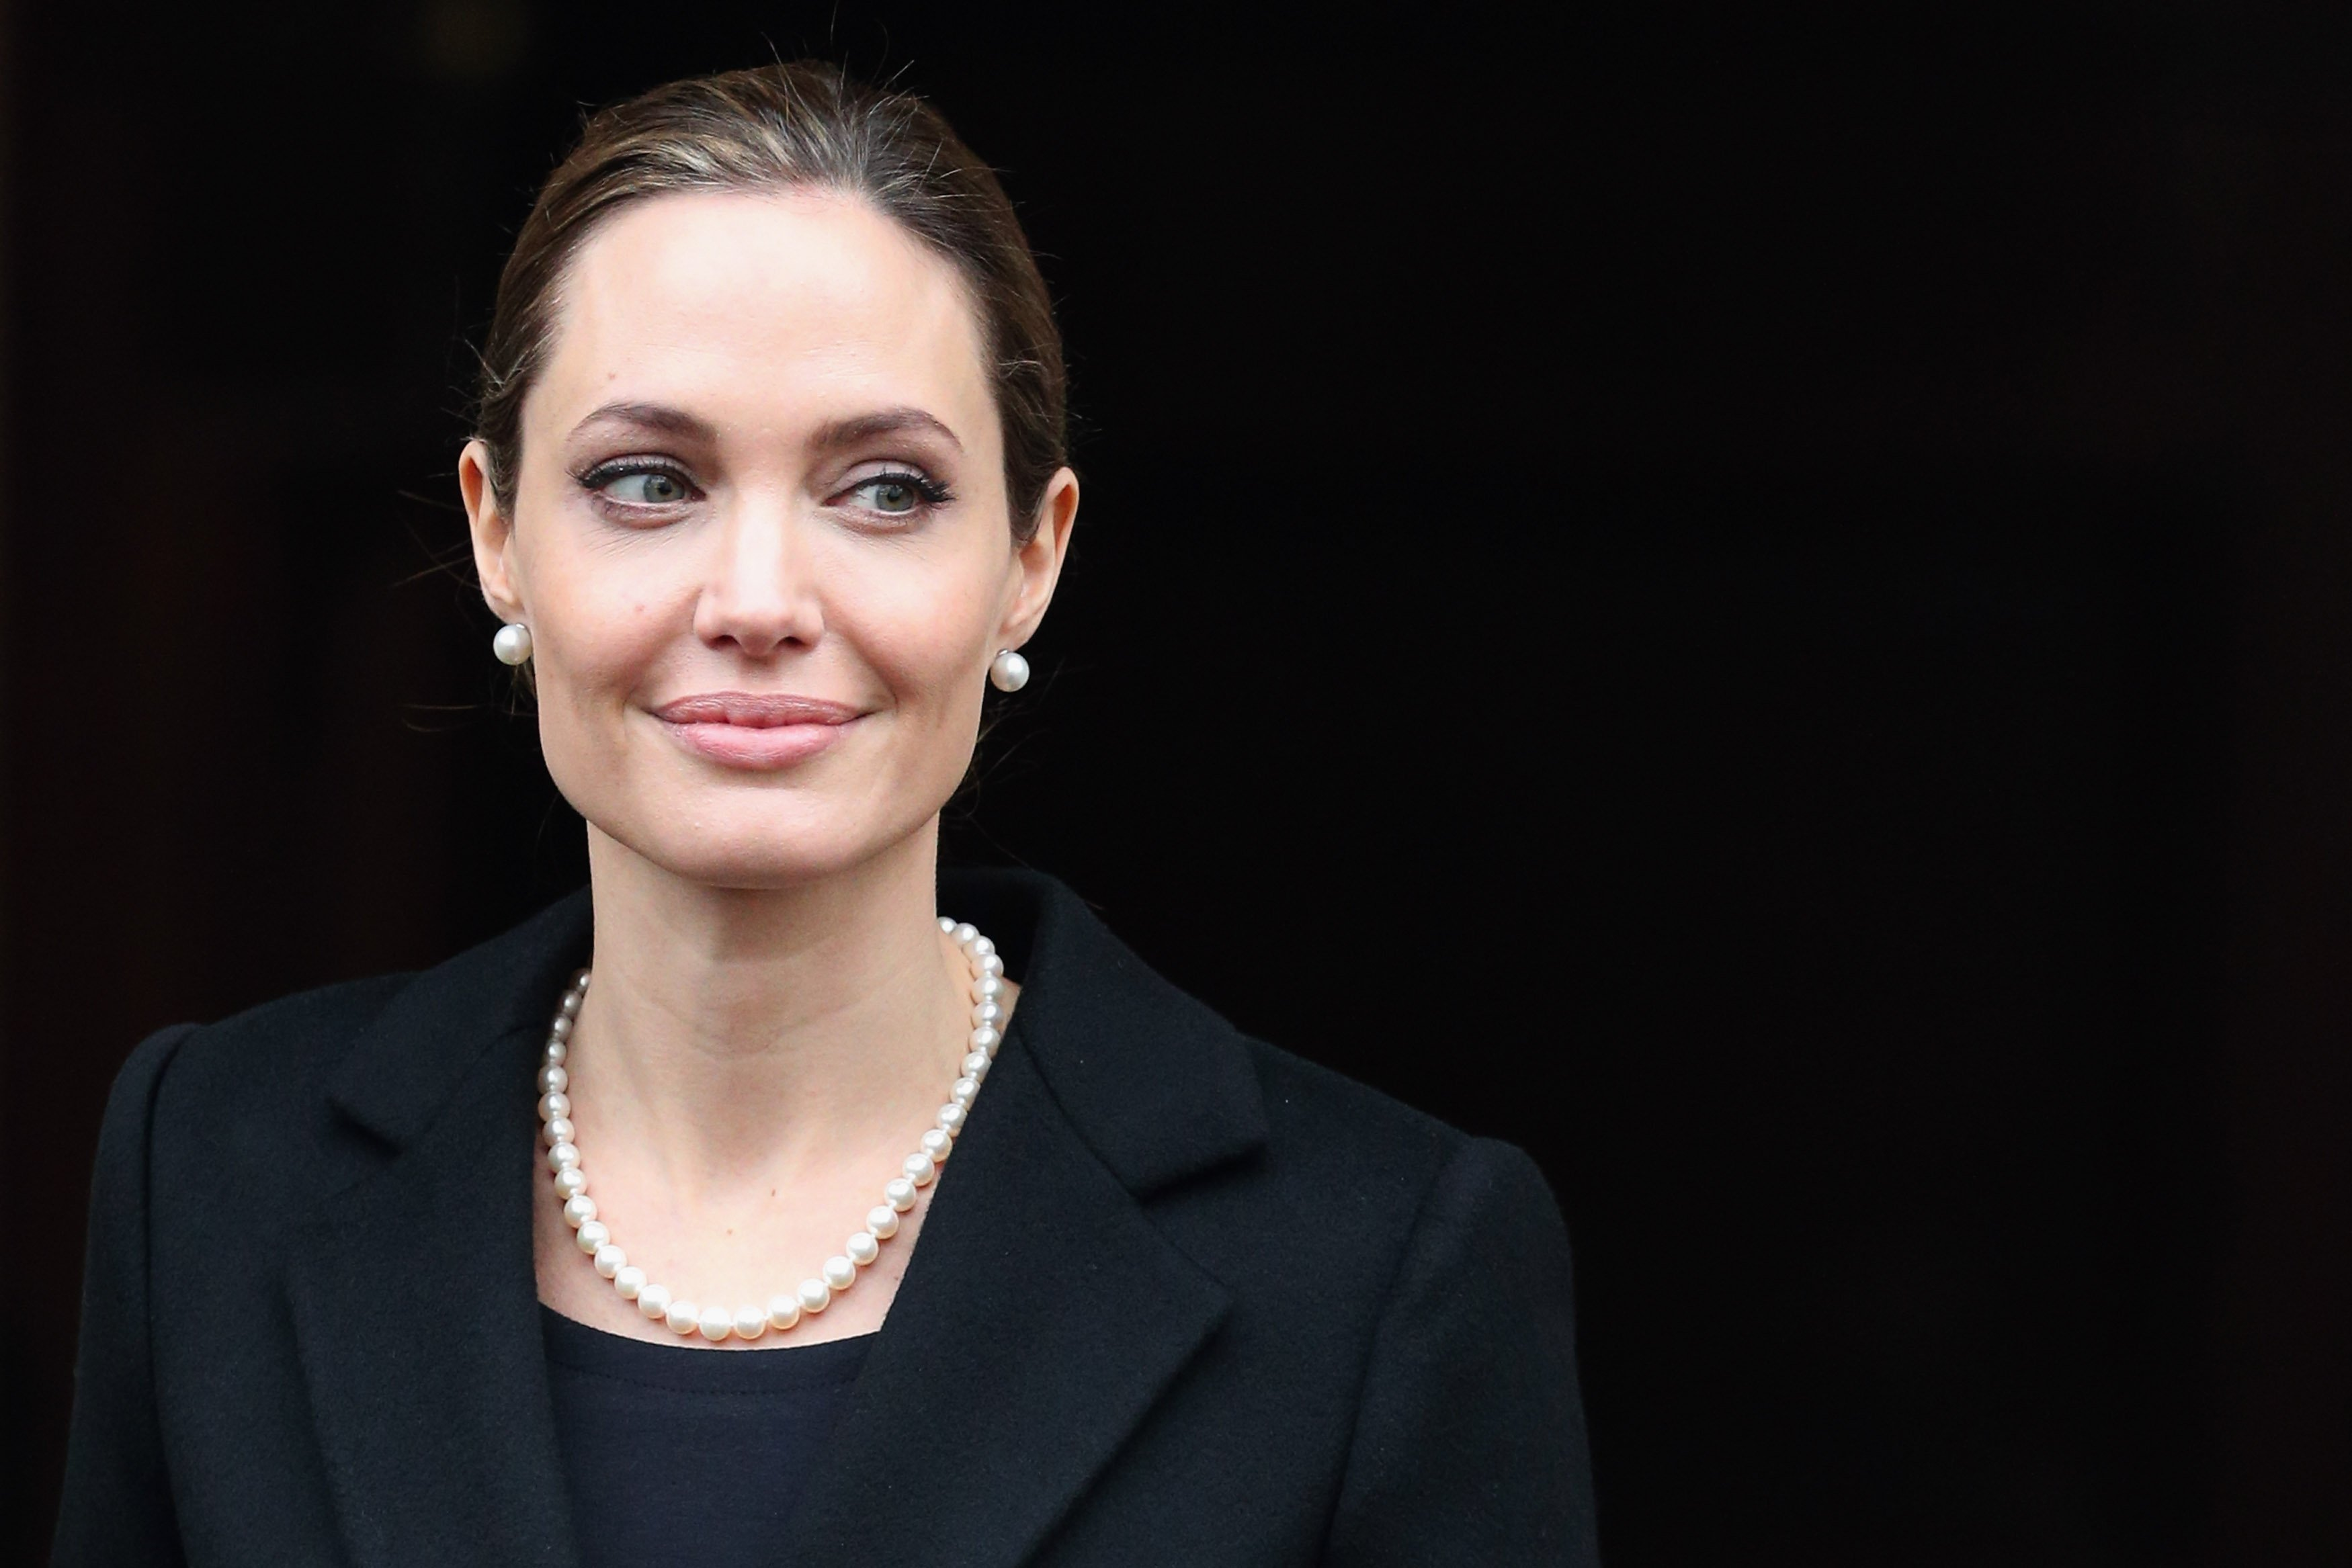 Angelina Jolie verlässt das Lancaster House, nachdem sie an der G8-Außenministerkonferenz am 11. April 2013 in London, England, teilgenommen hat | Quelle: Getty Images